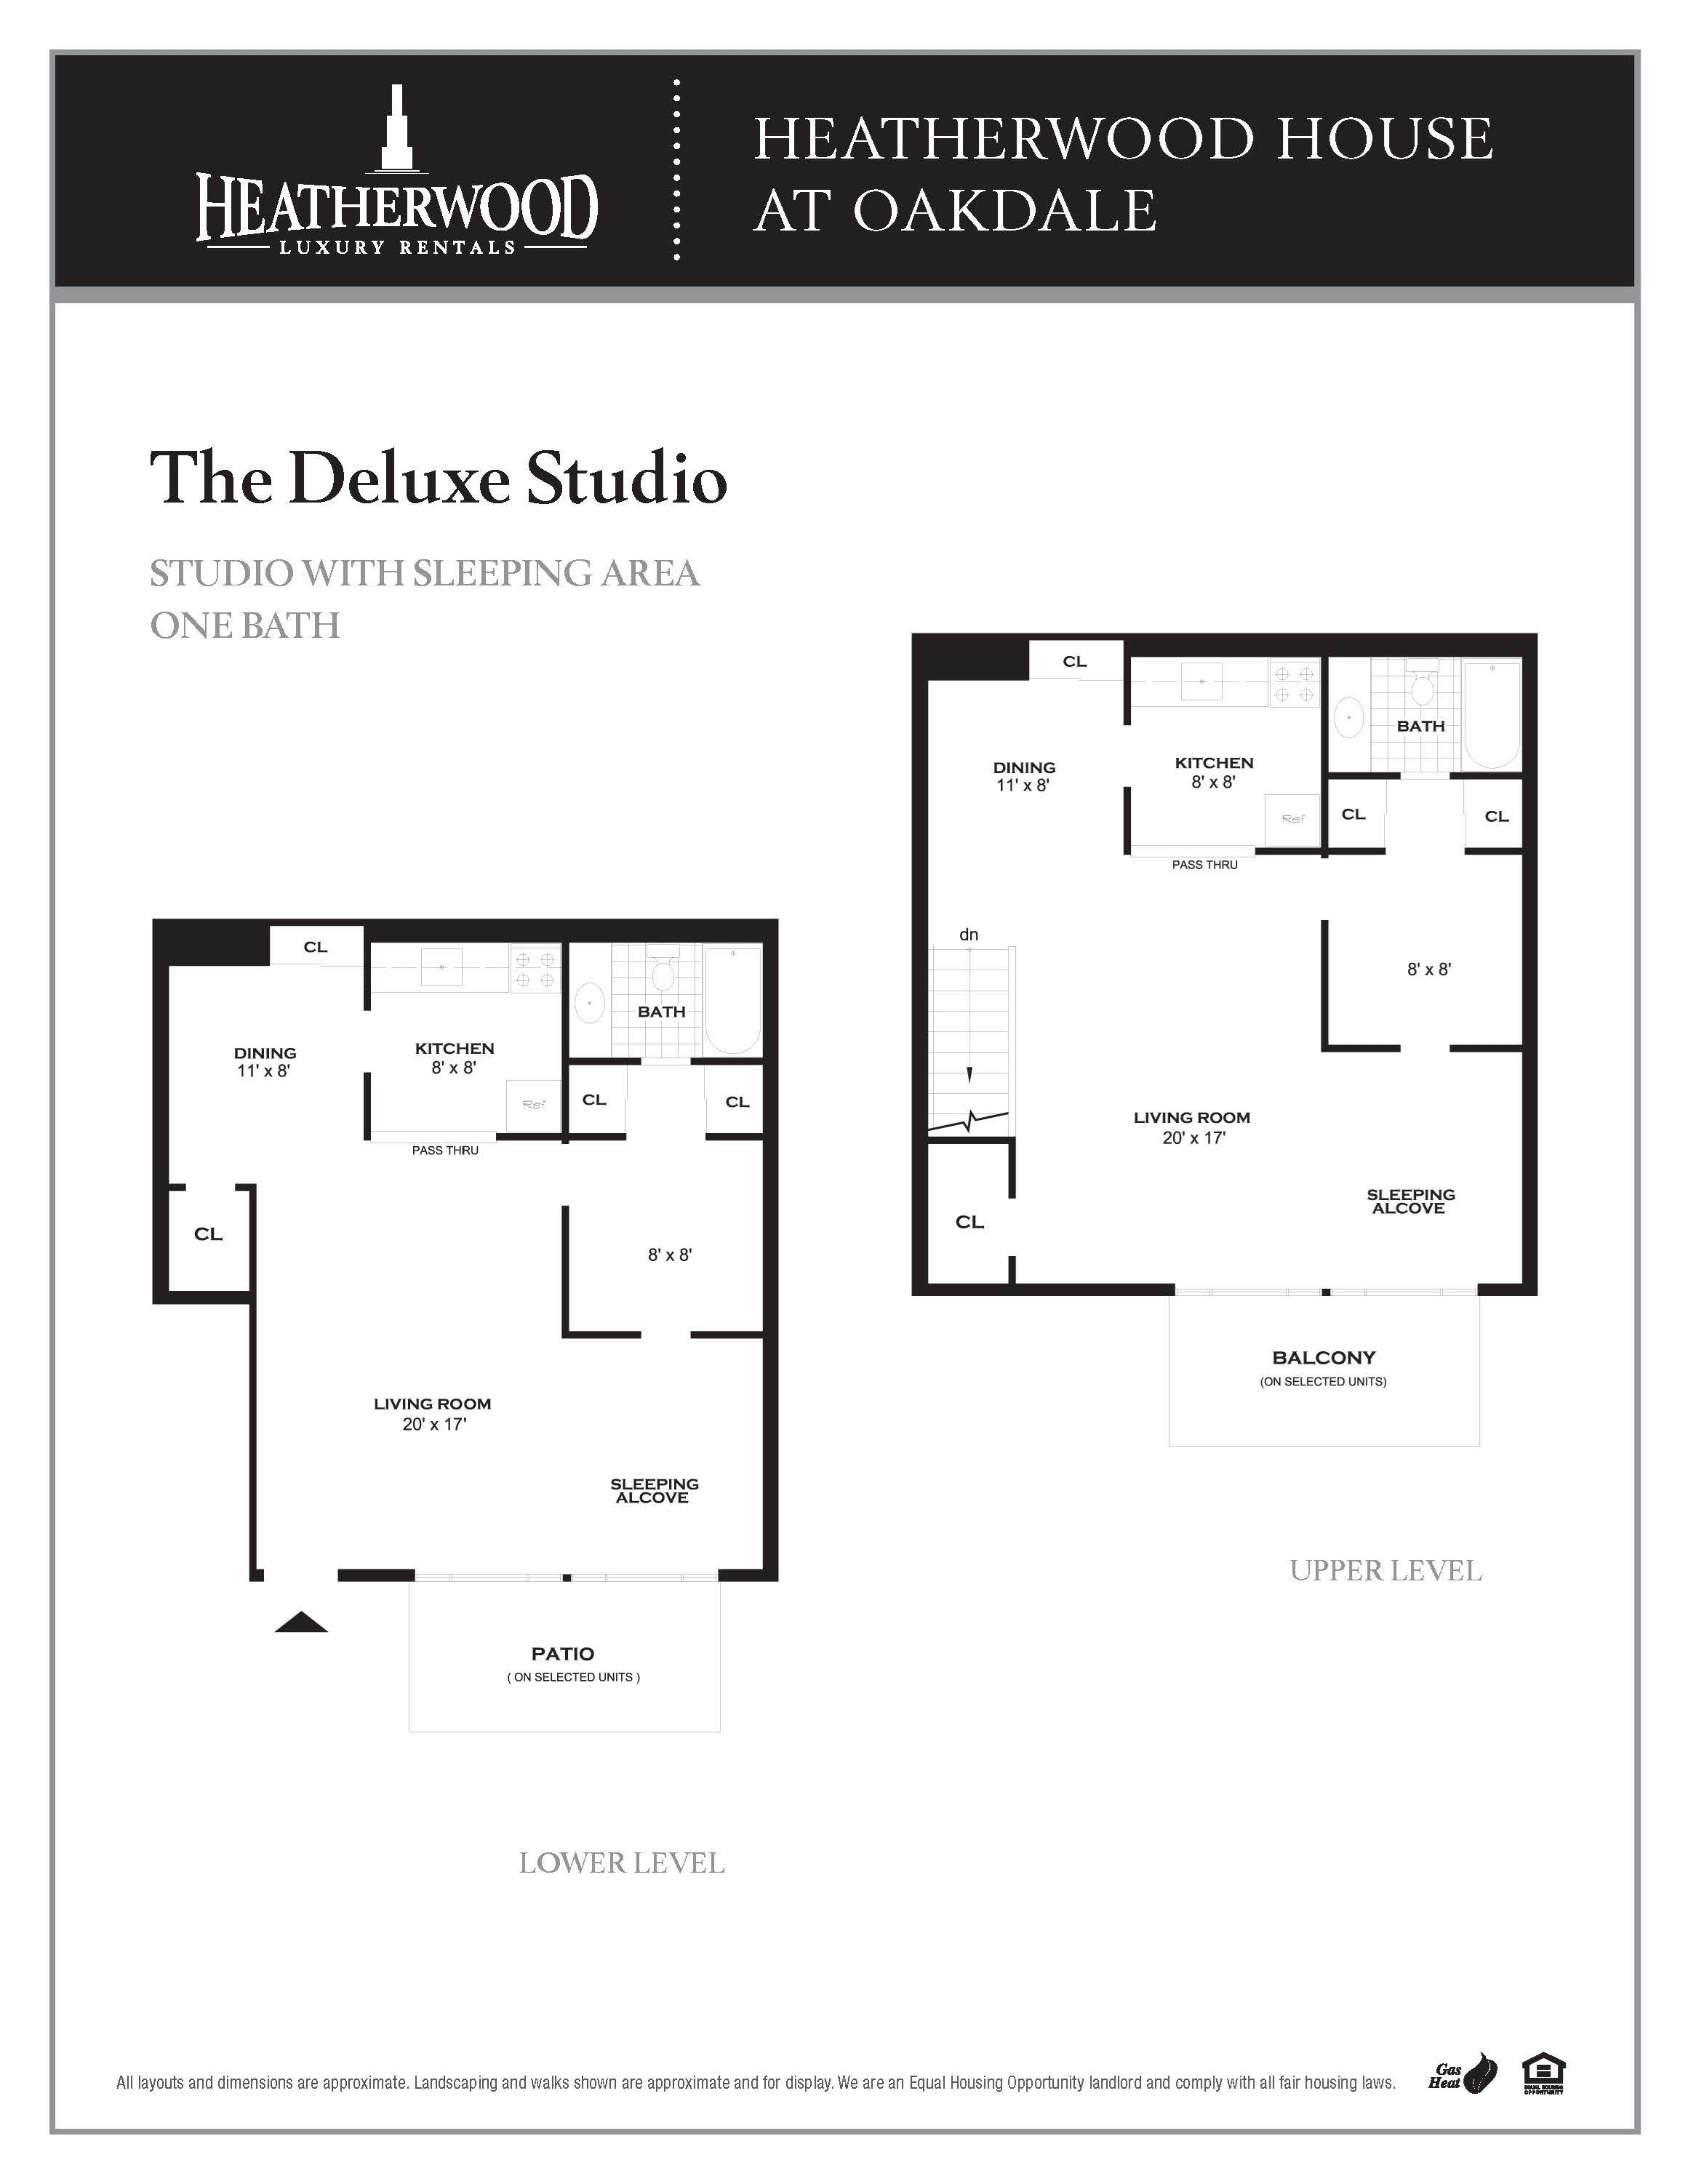 The Deluxe Studio Floorplan at HH Oakdale